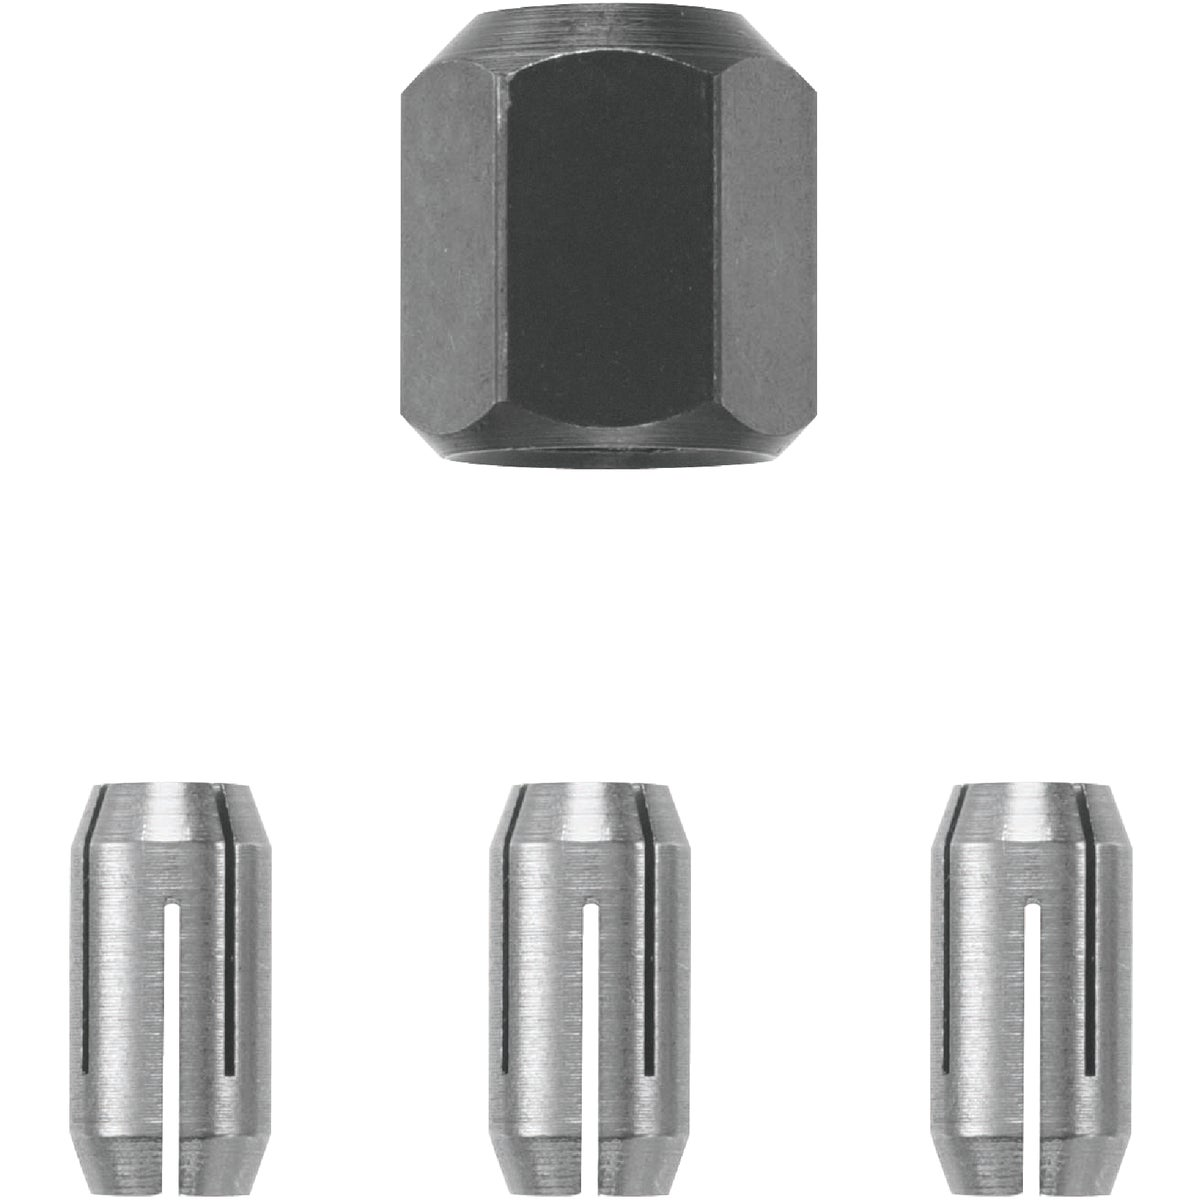 COLLET NUT KIT - CN1 by Rotozip Tool Corp